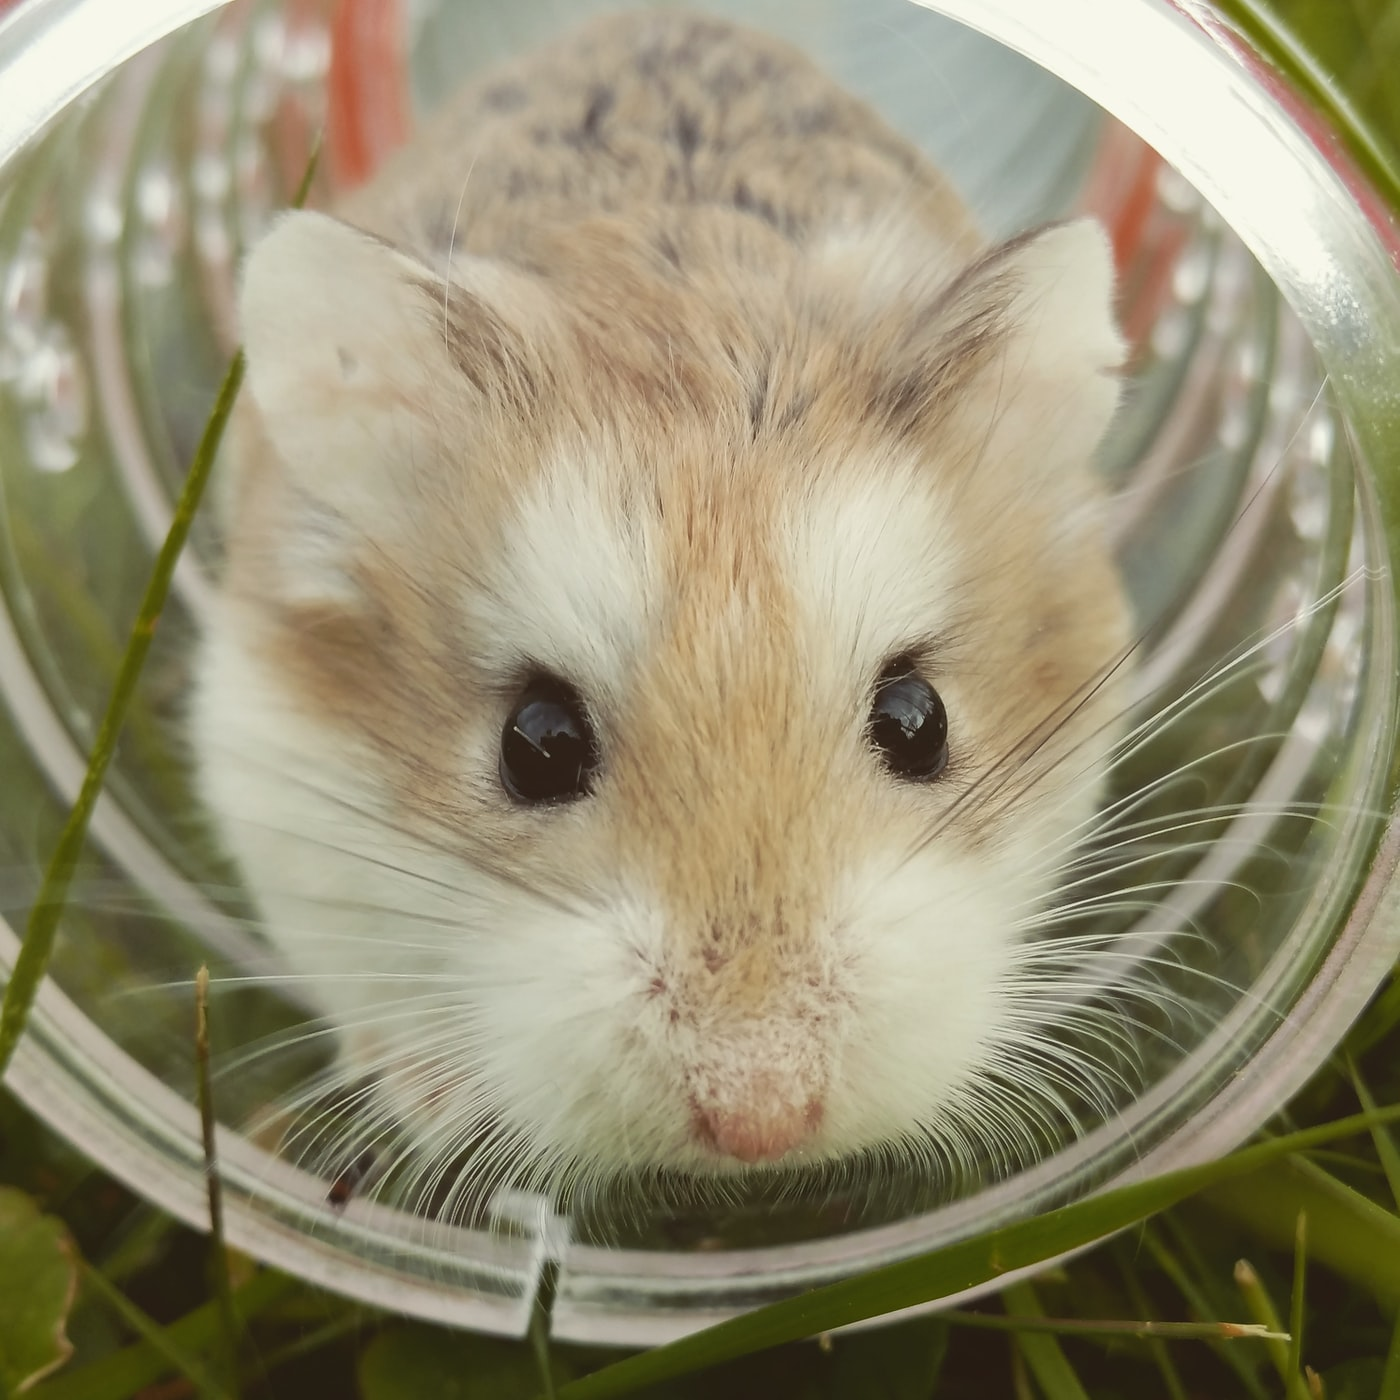 a hamster inside a bottle